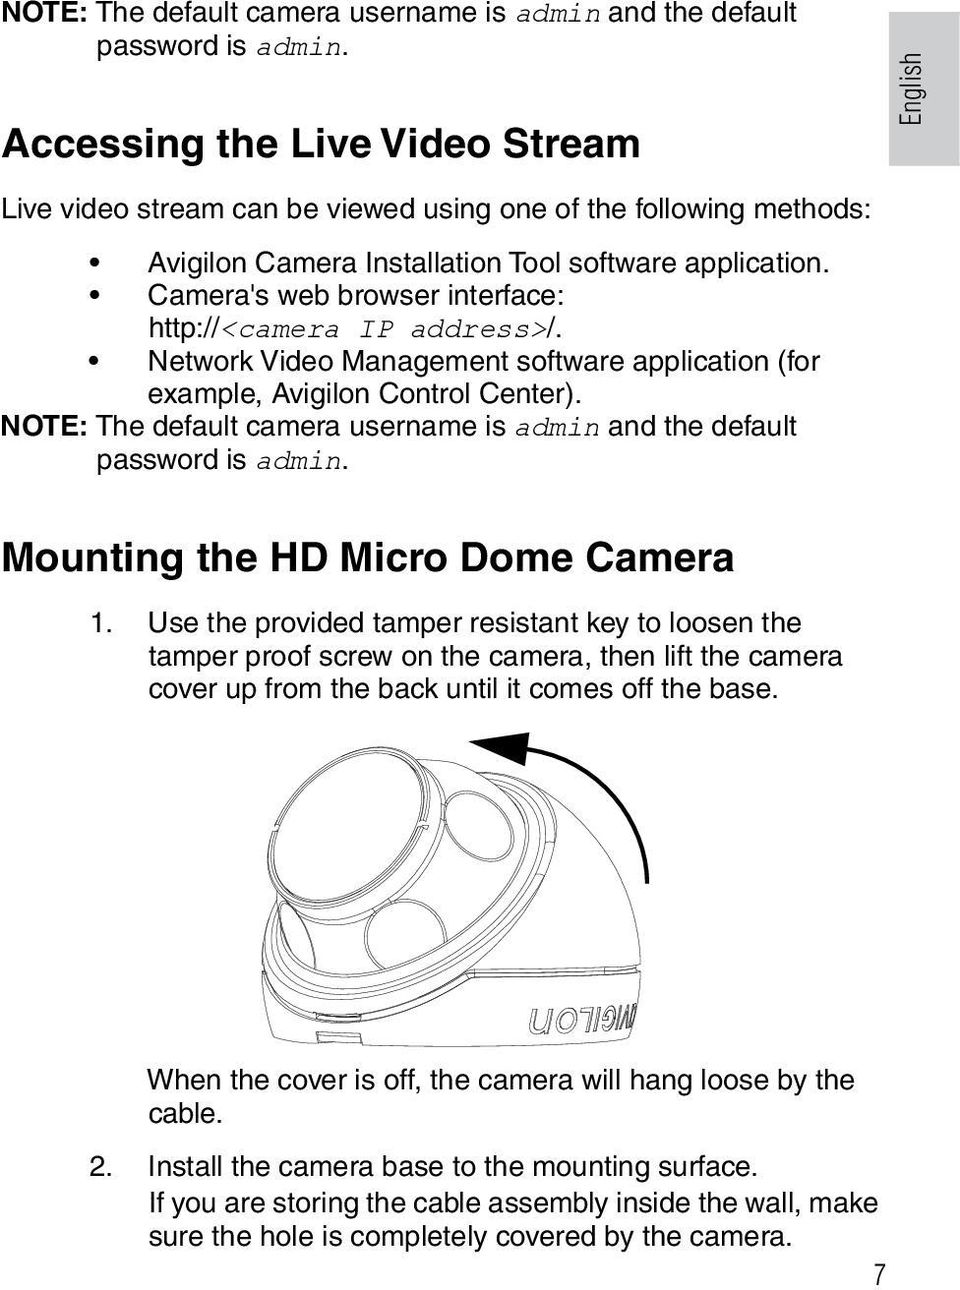 Camera's web browser interface: http://<camera IP address>/. Network Video Management software application (for example, Avigilon Control Center).  English Mounting the HD Micro Dome Camera 1.